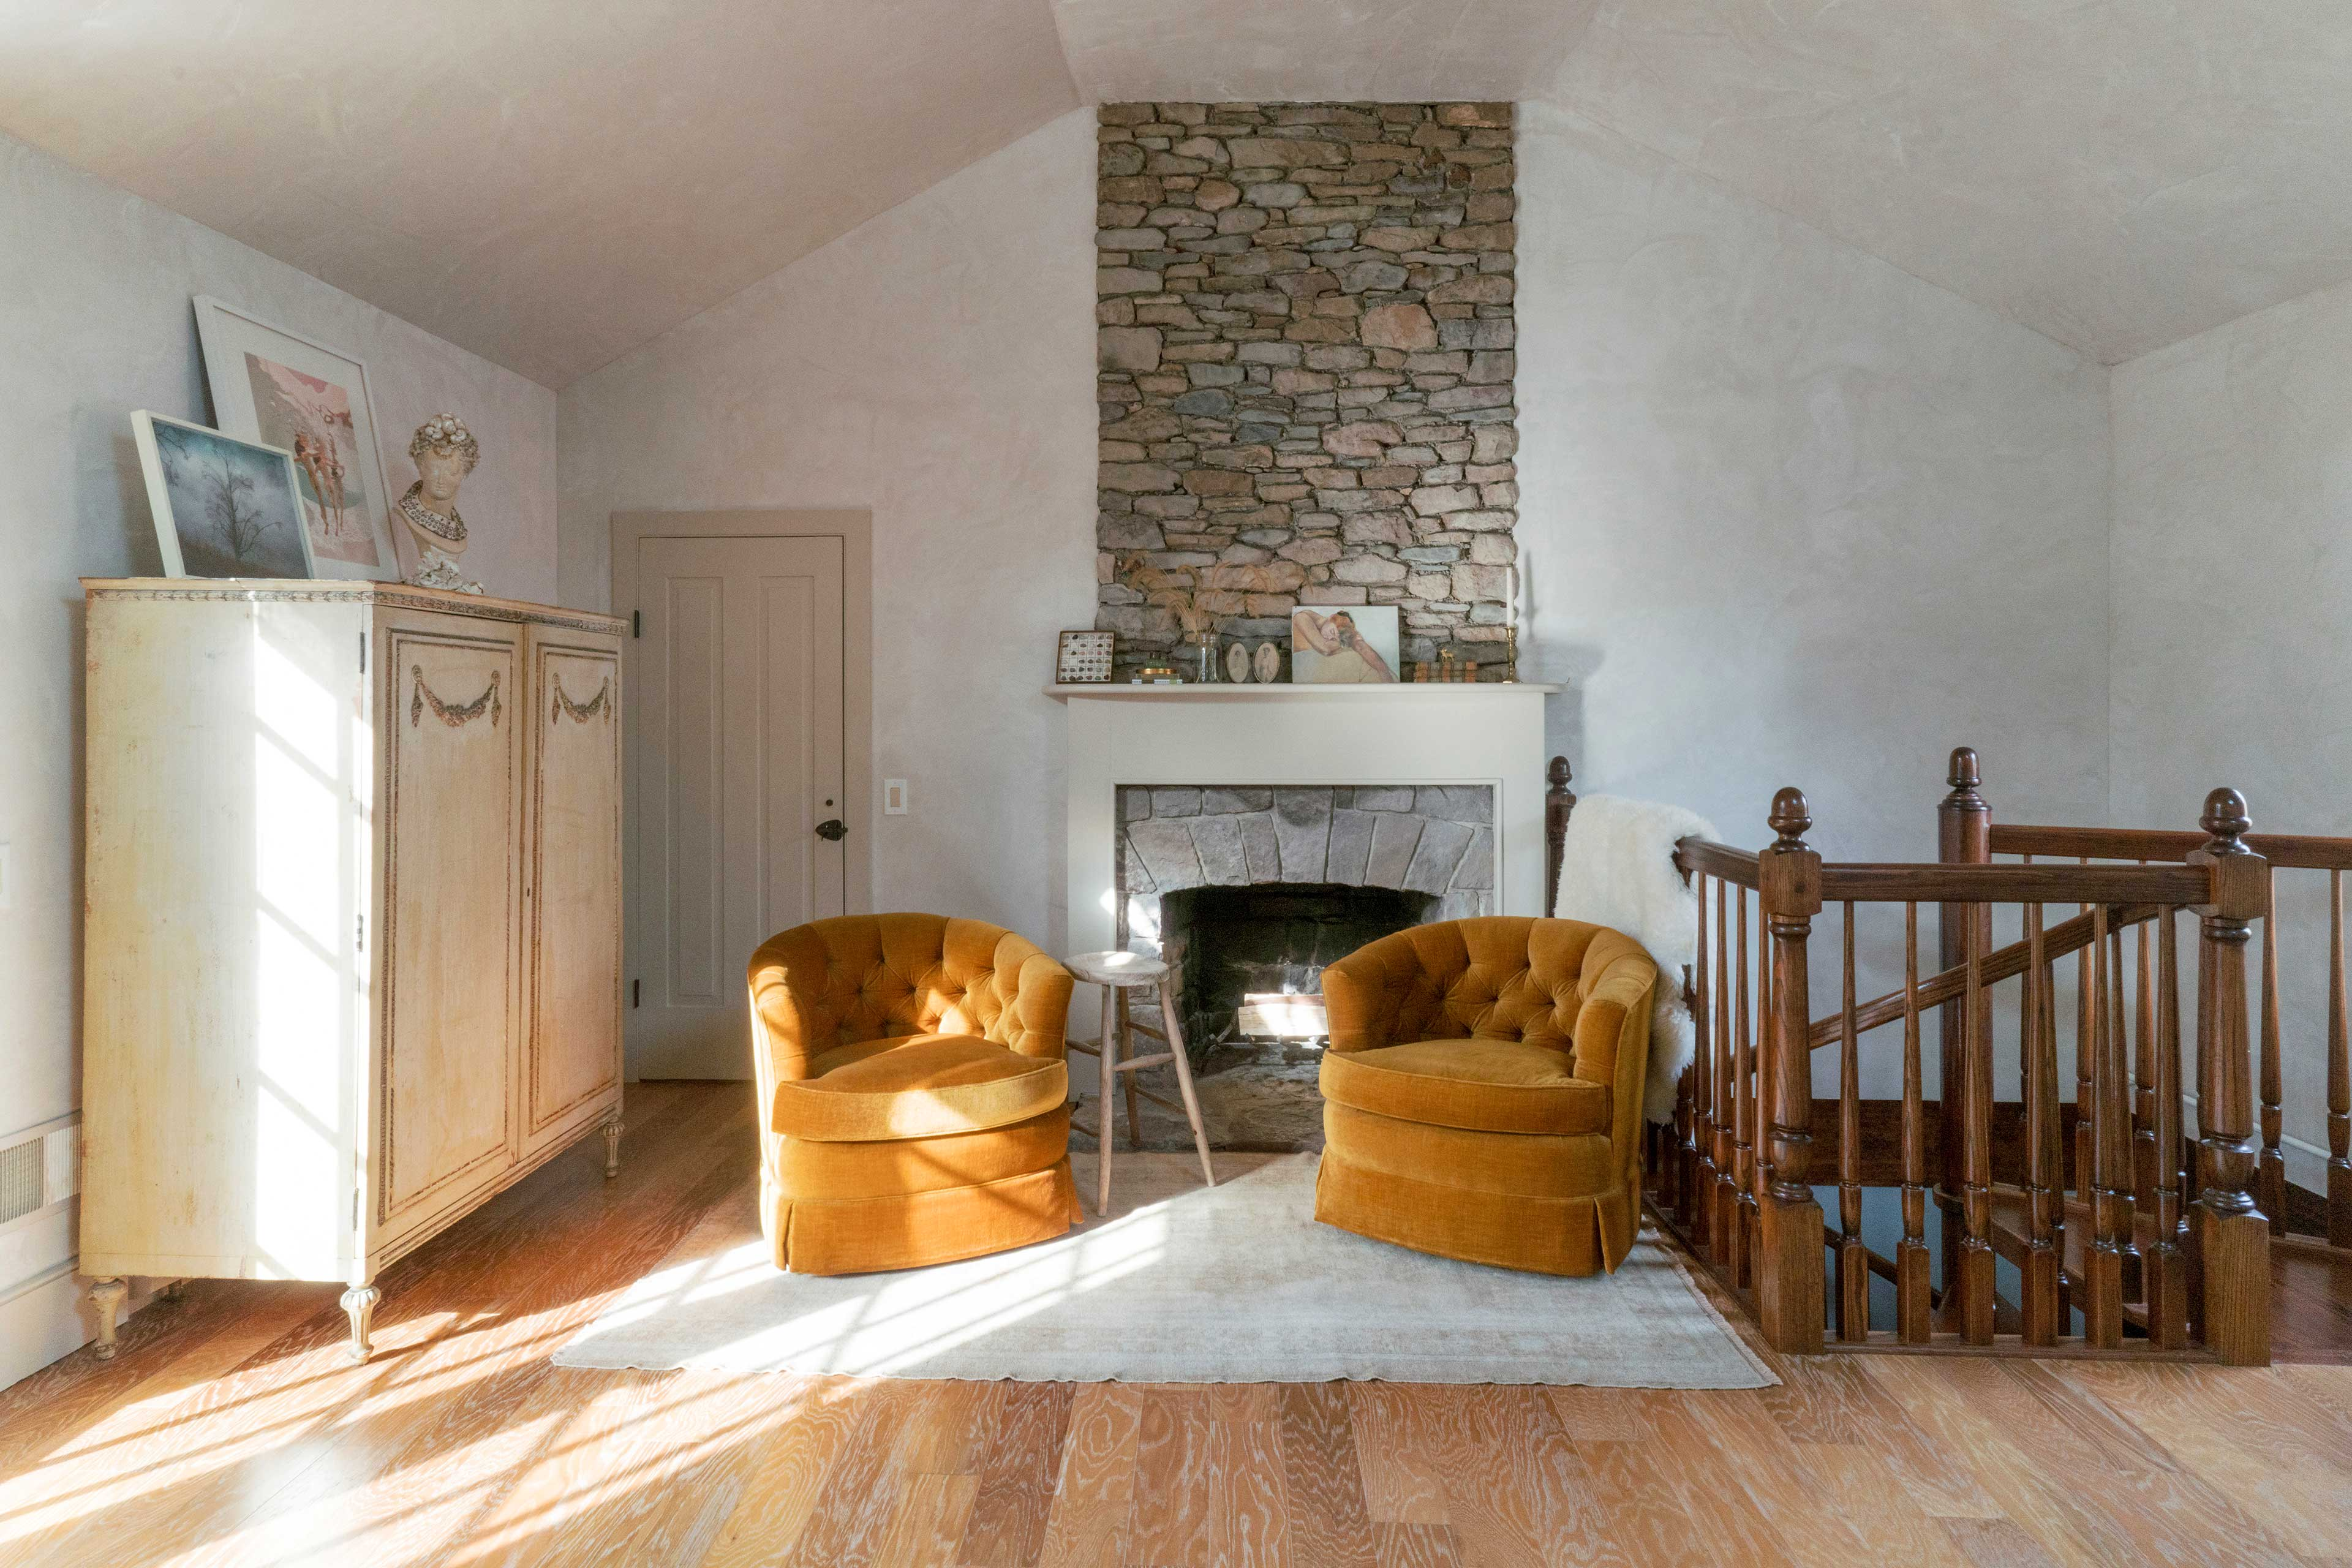 Cozy up by the fireplace in the master bedroom before drifting to sleep.